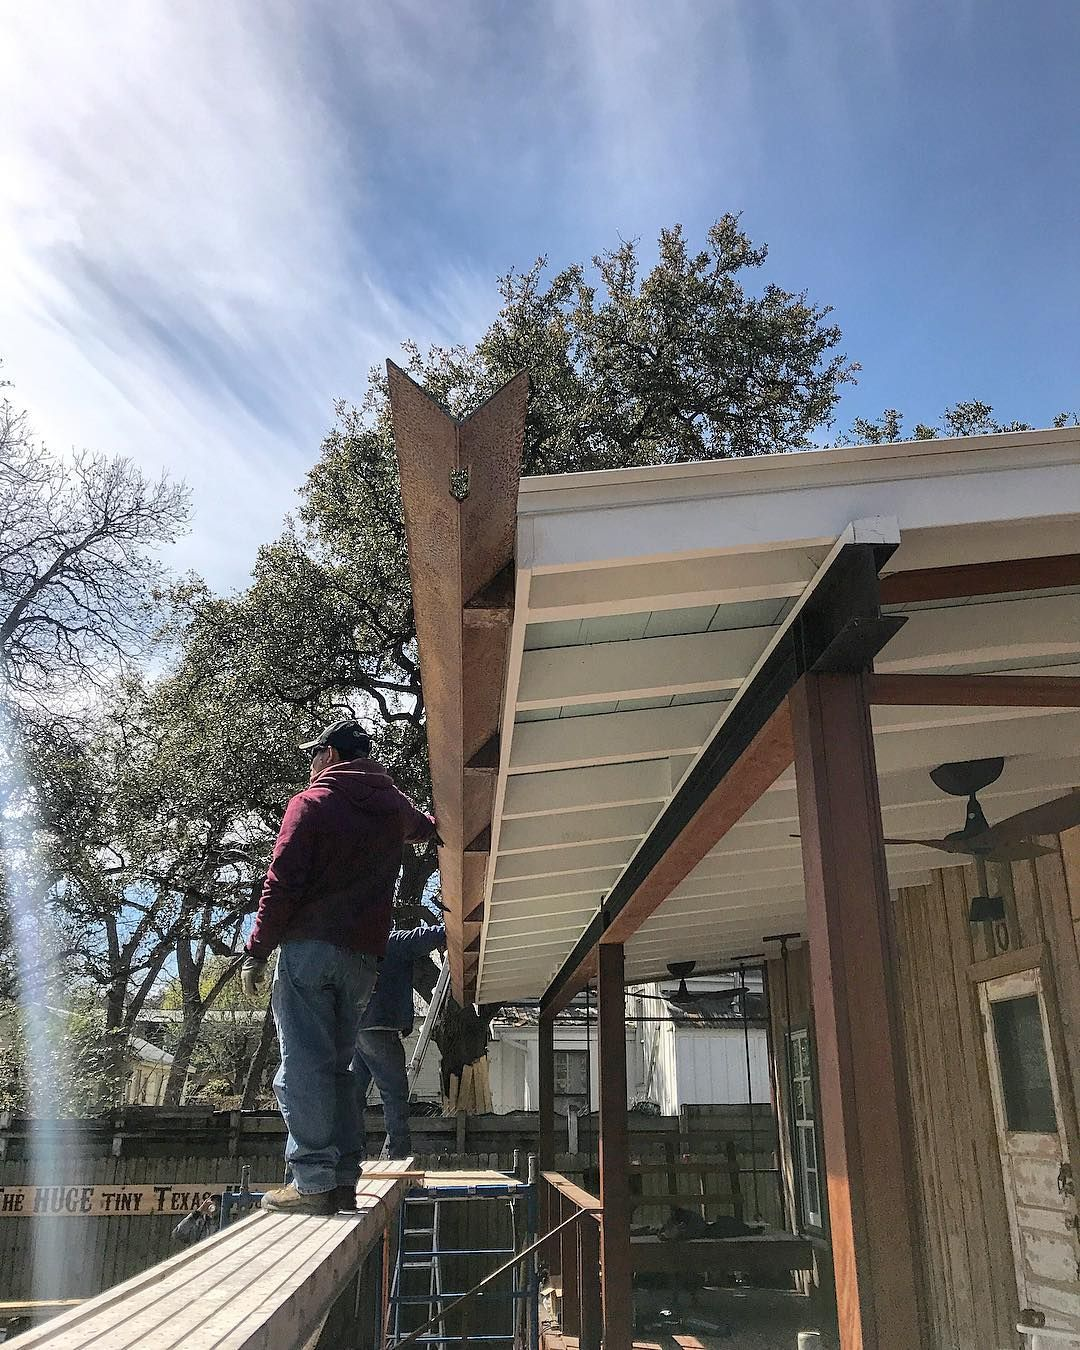 Drophouse Design On Instagram Custom 1 4 Plate Gutter And Brackets Digarchitects Austin Fabrication Welding Architecture Design Instagram Gutter